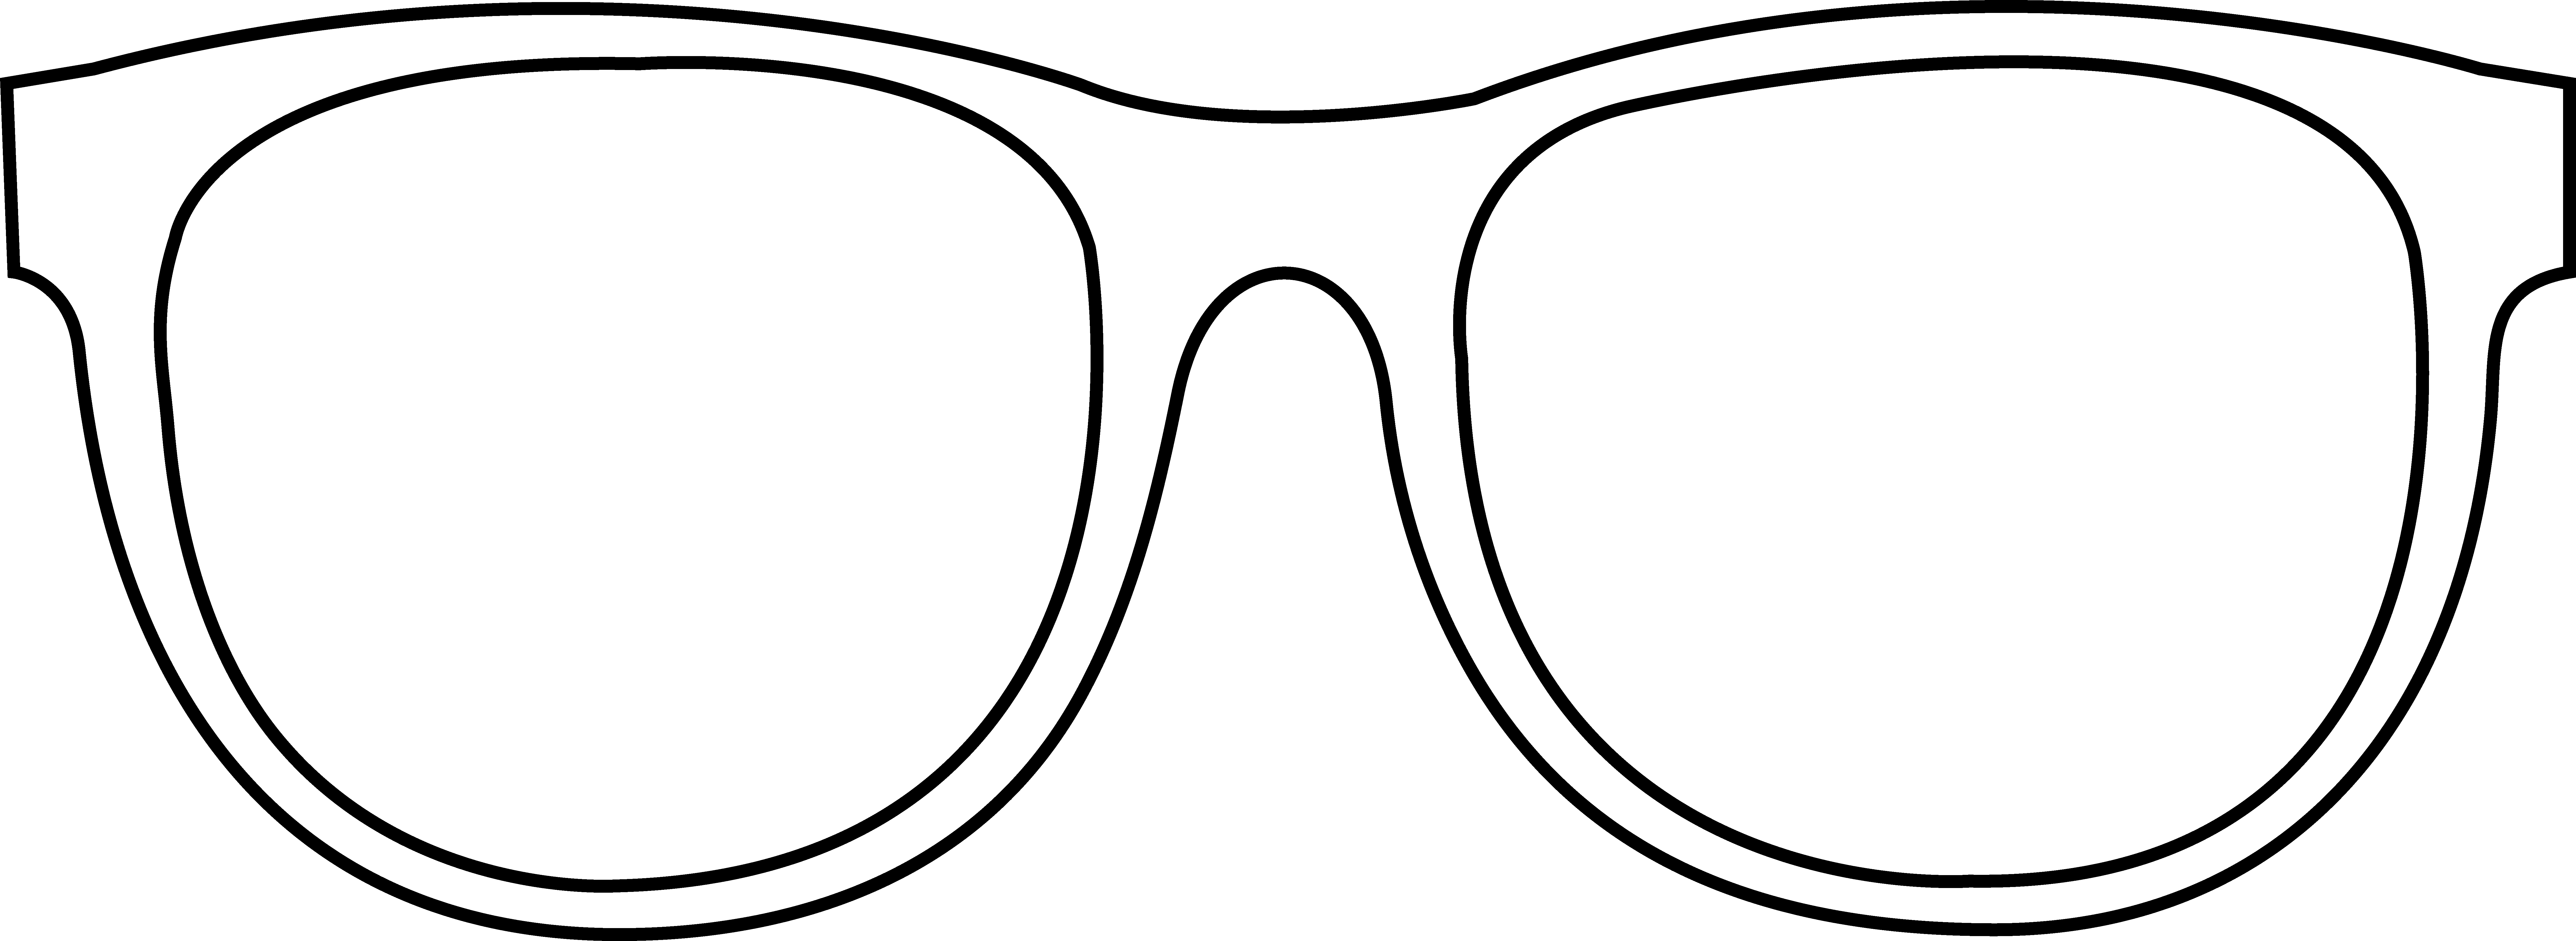 Sunglasses clipart #1, Download drawings